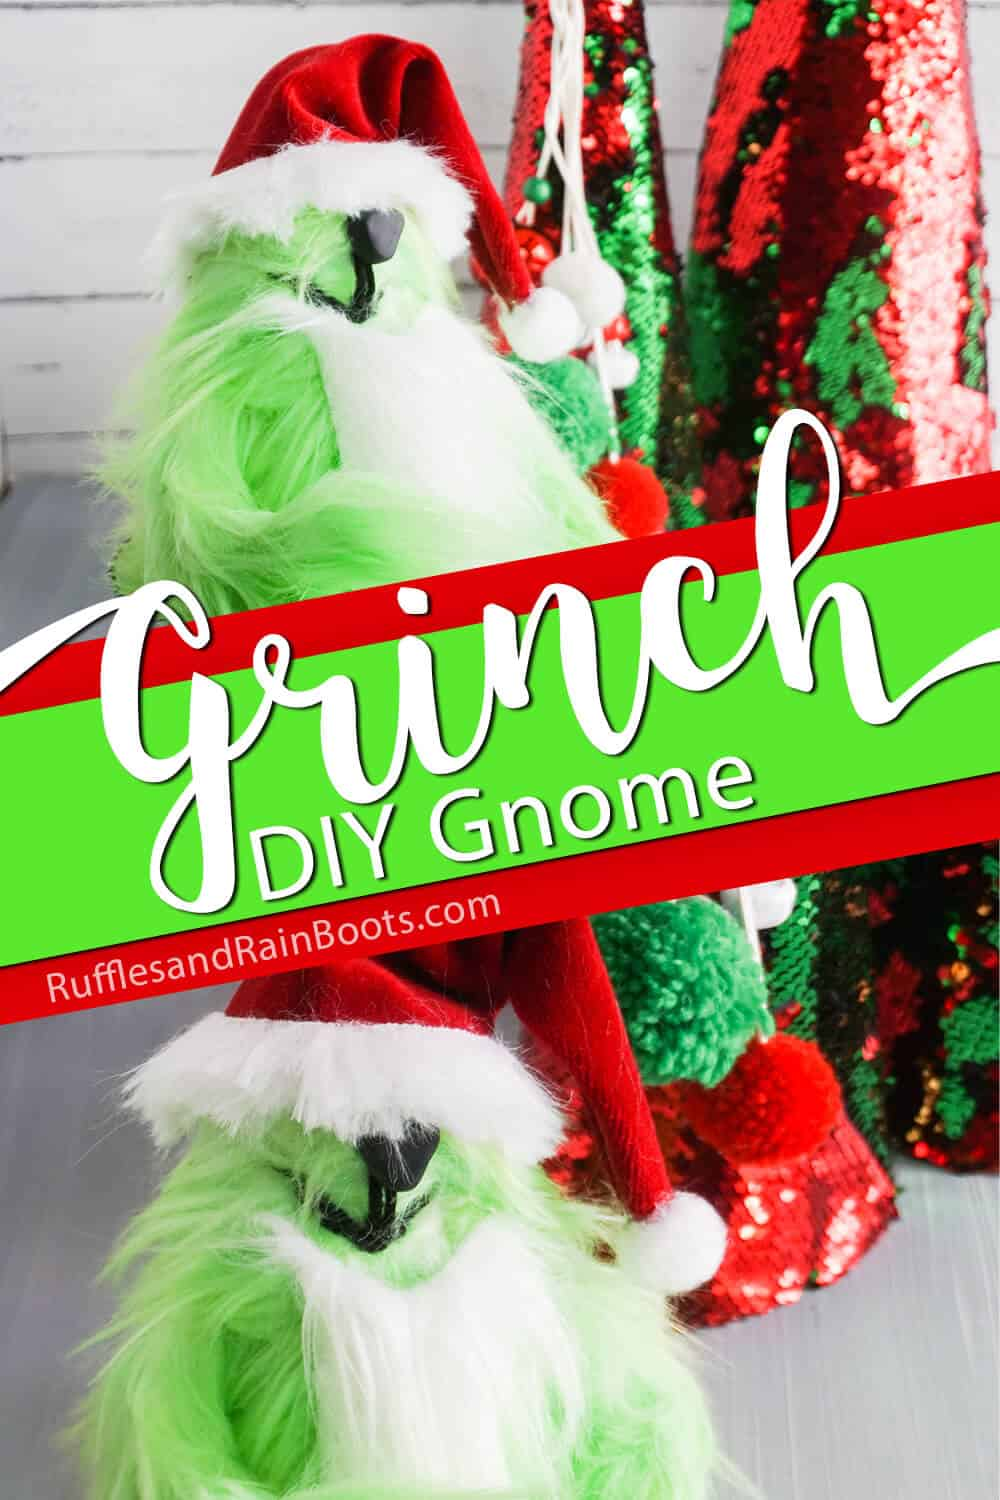 photo collage of a grinch gnome with text which reads grinch diy gnome